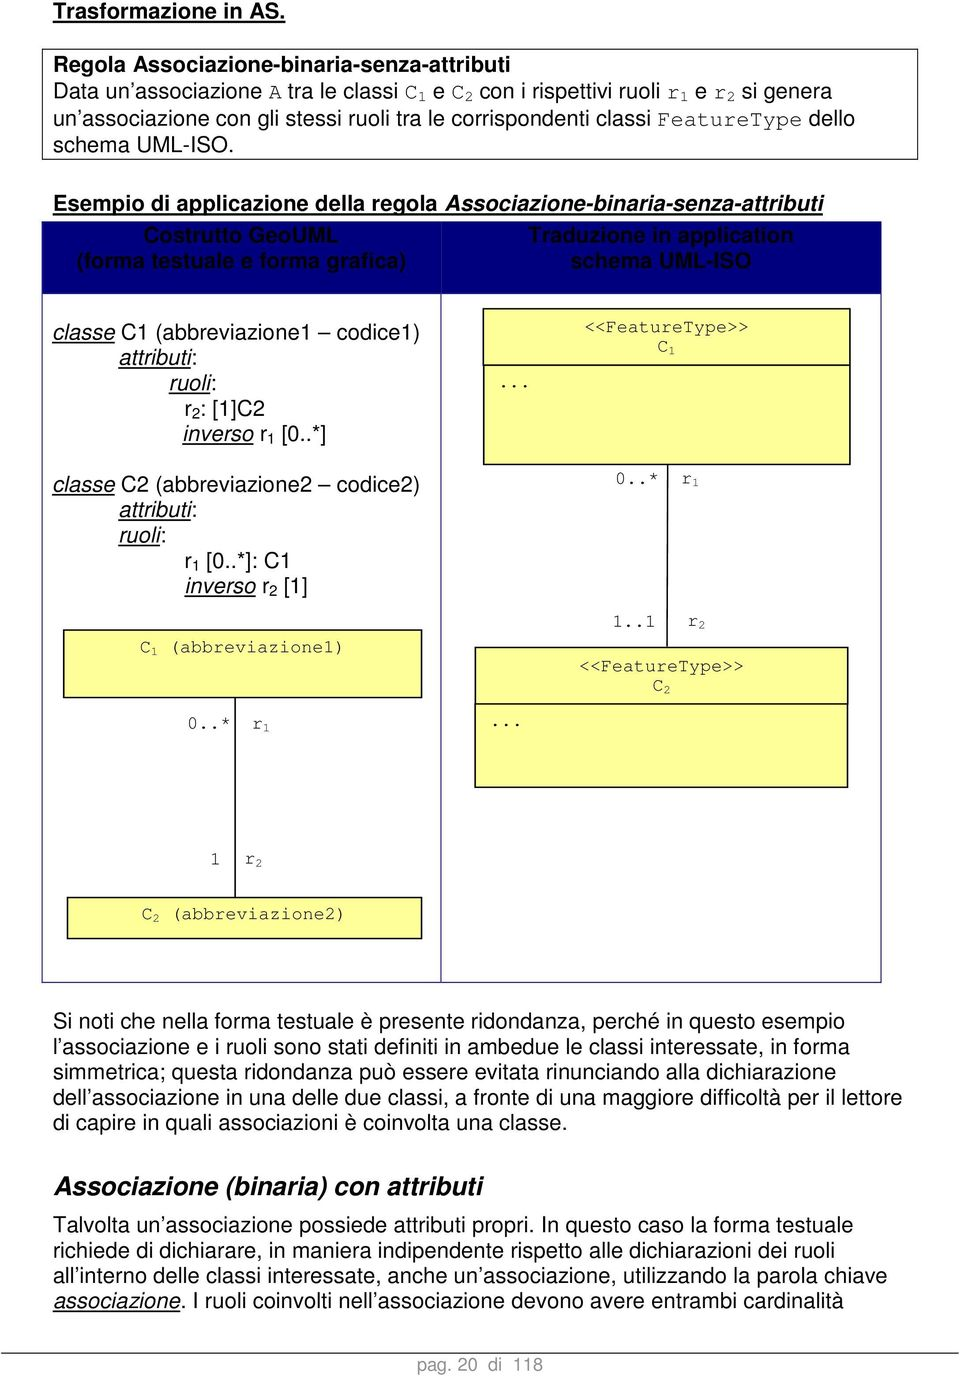 FeatureType dello schema UML-ISO.